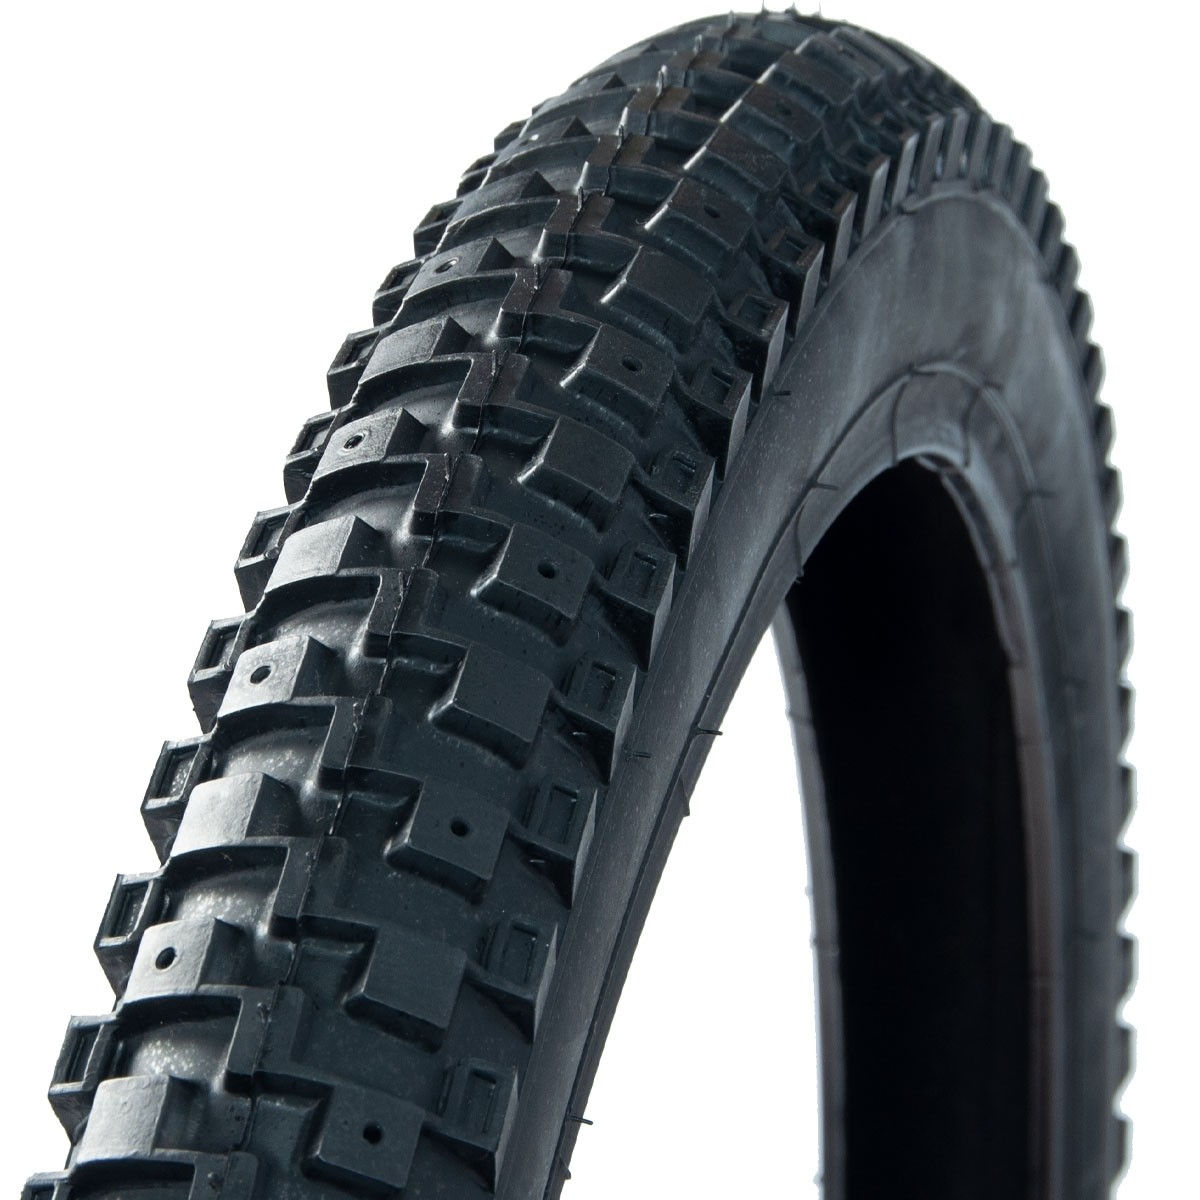 2.25-19 (23x2.25) Suomi Tyres moped SPEED, ulkorengas